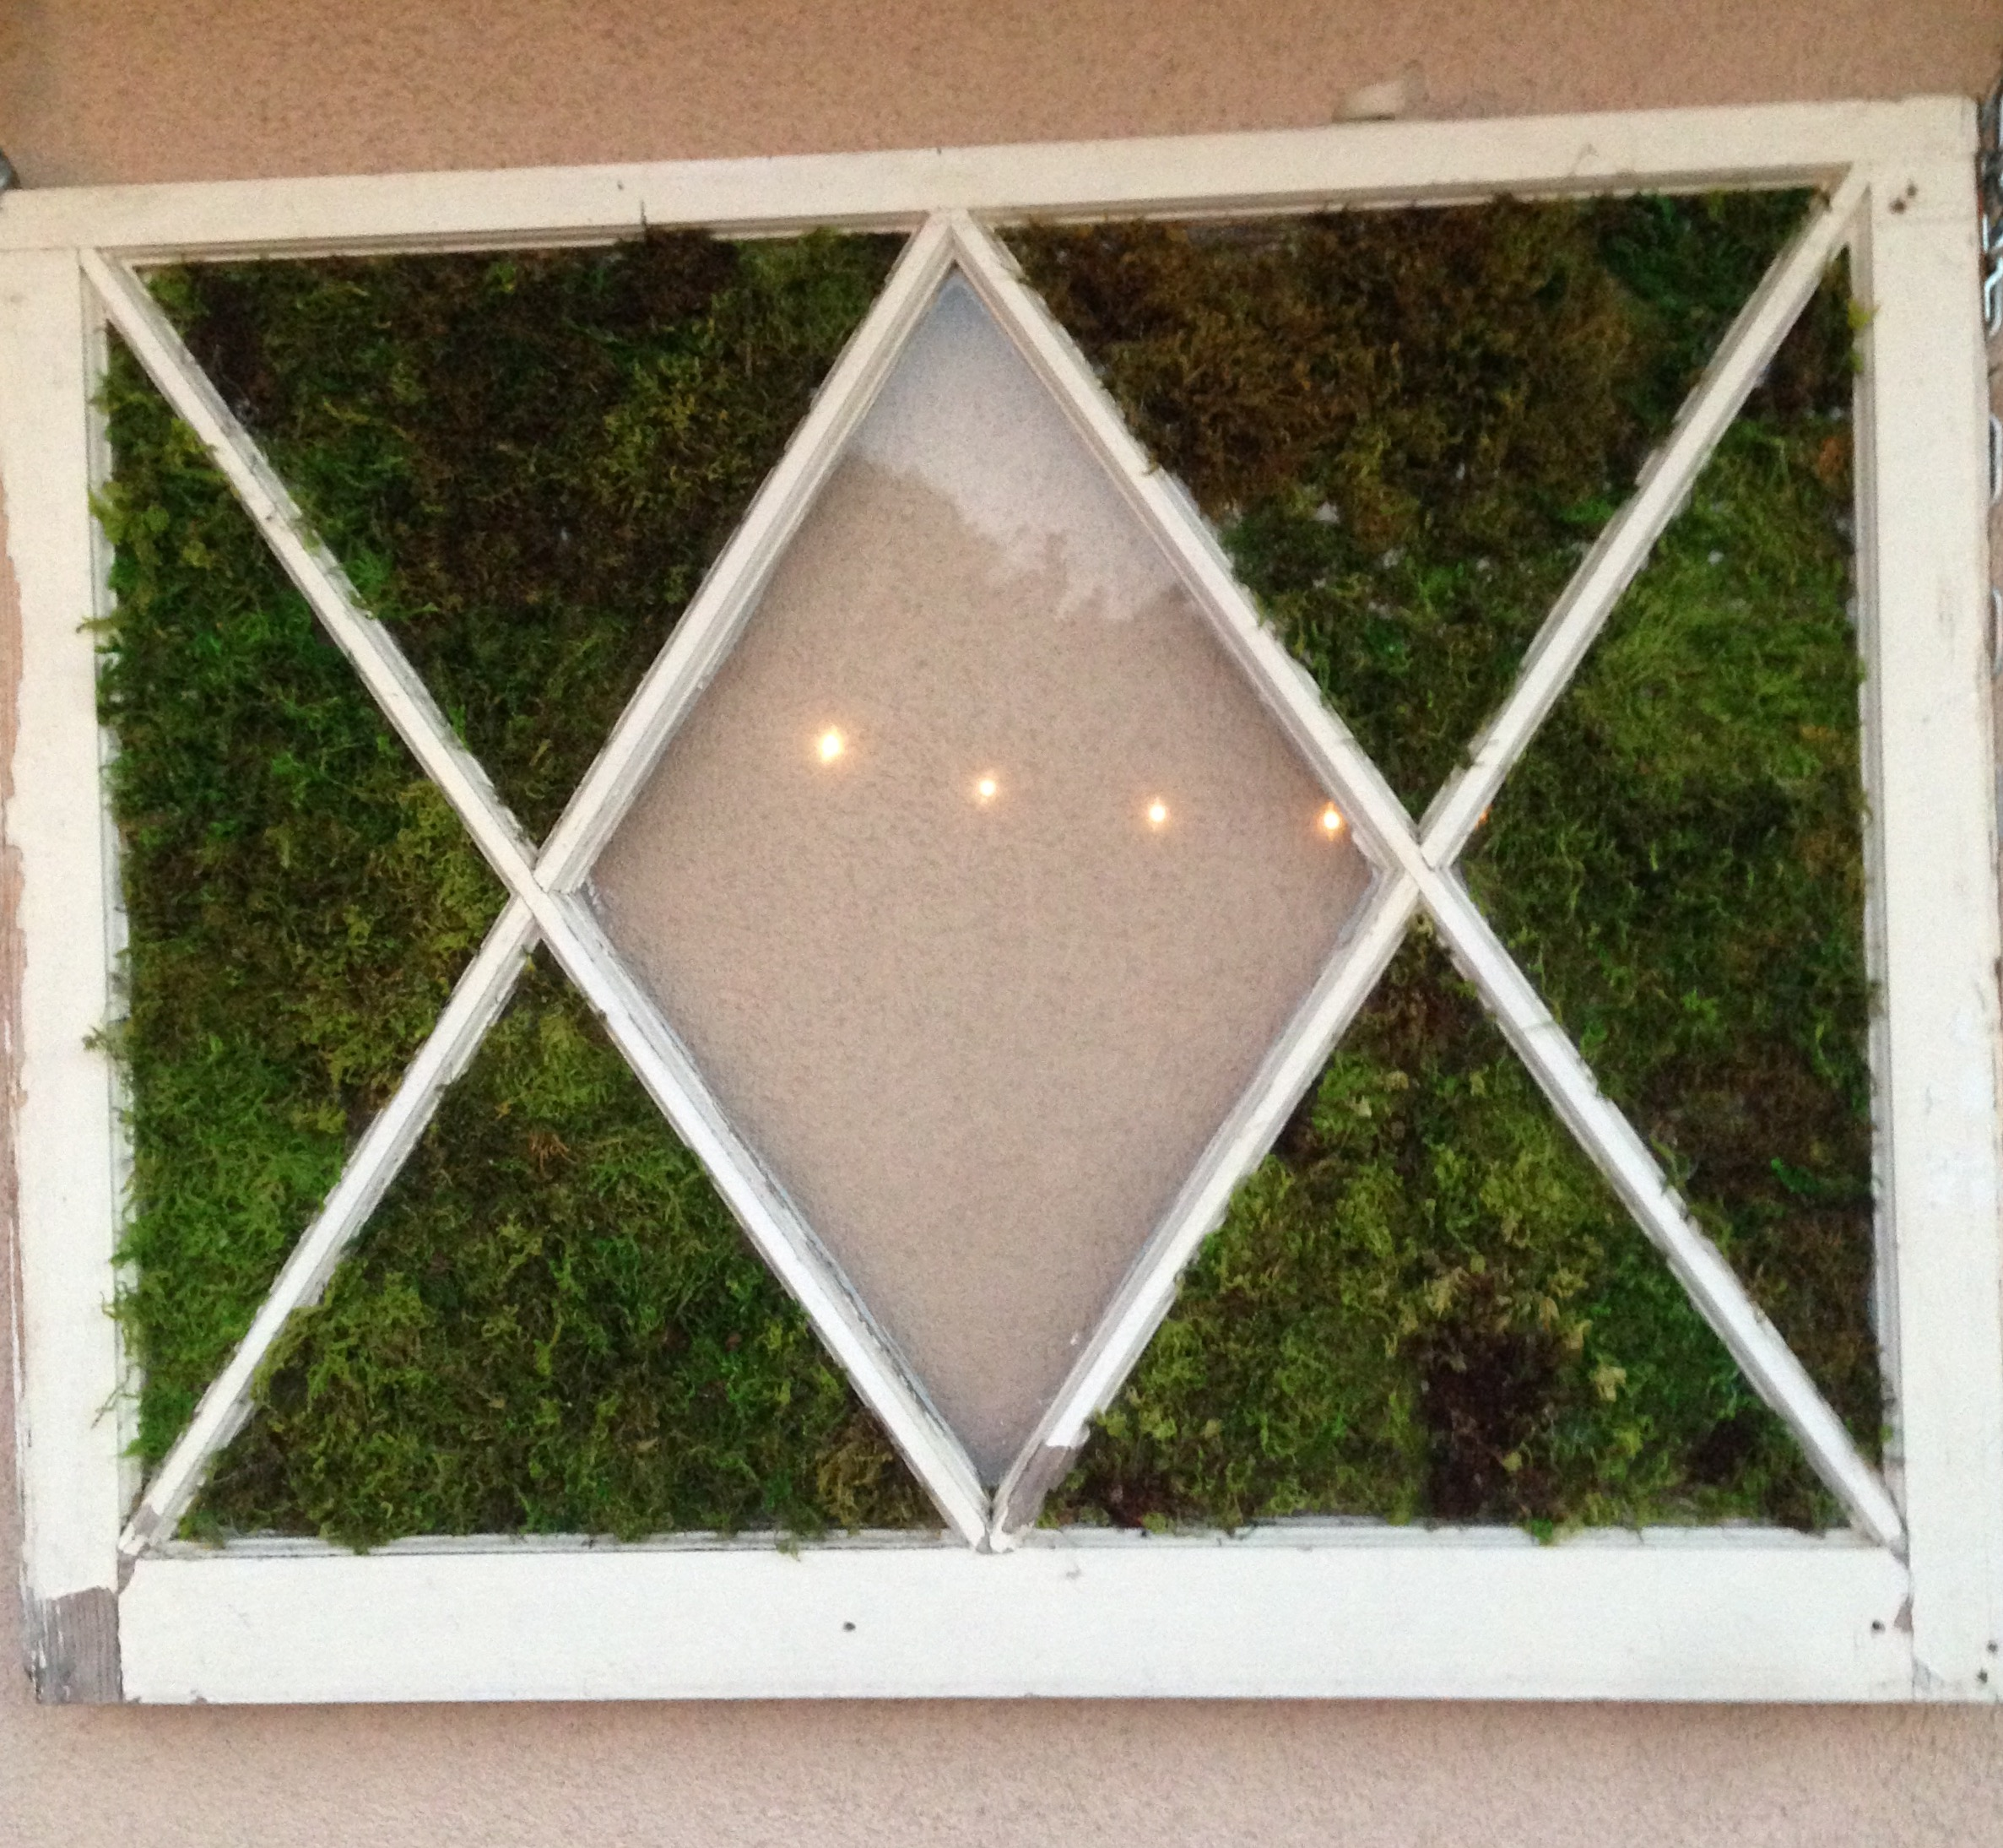 MOssy Window - Did you know that you can spray store bought moss with water every so often if it starts to get brown and dry? The moisture will bring it back to green. I love our little living window.